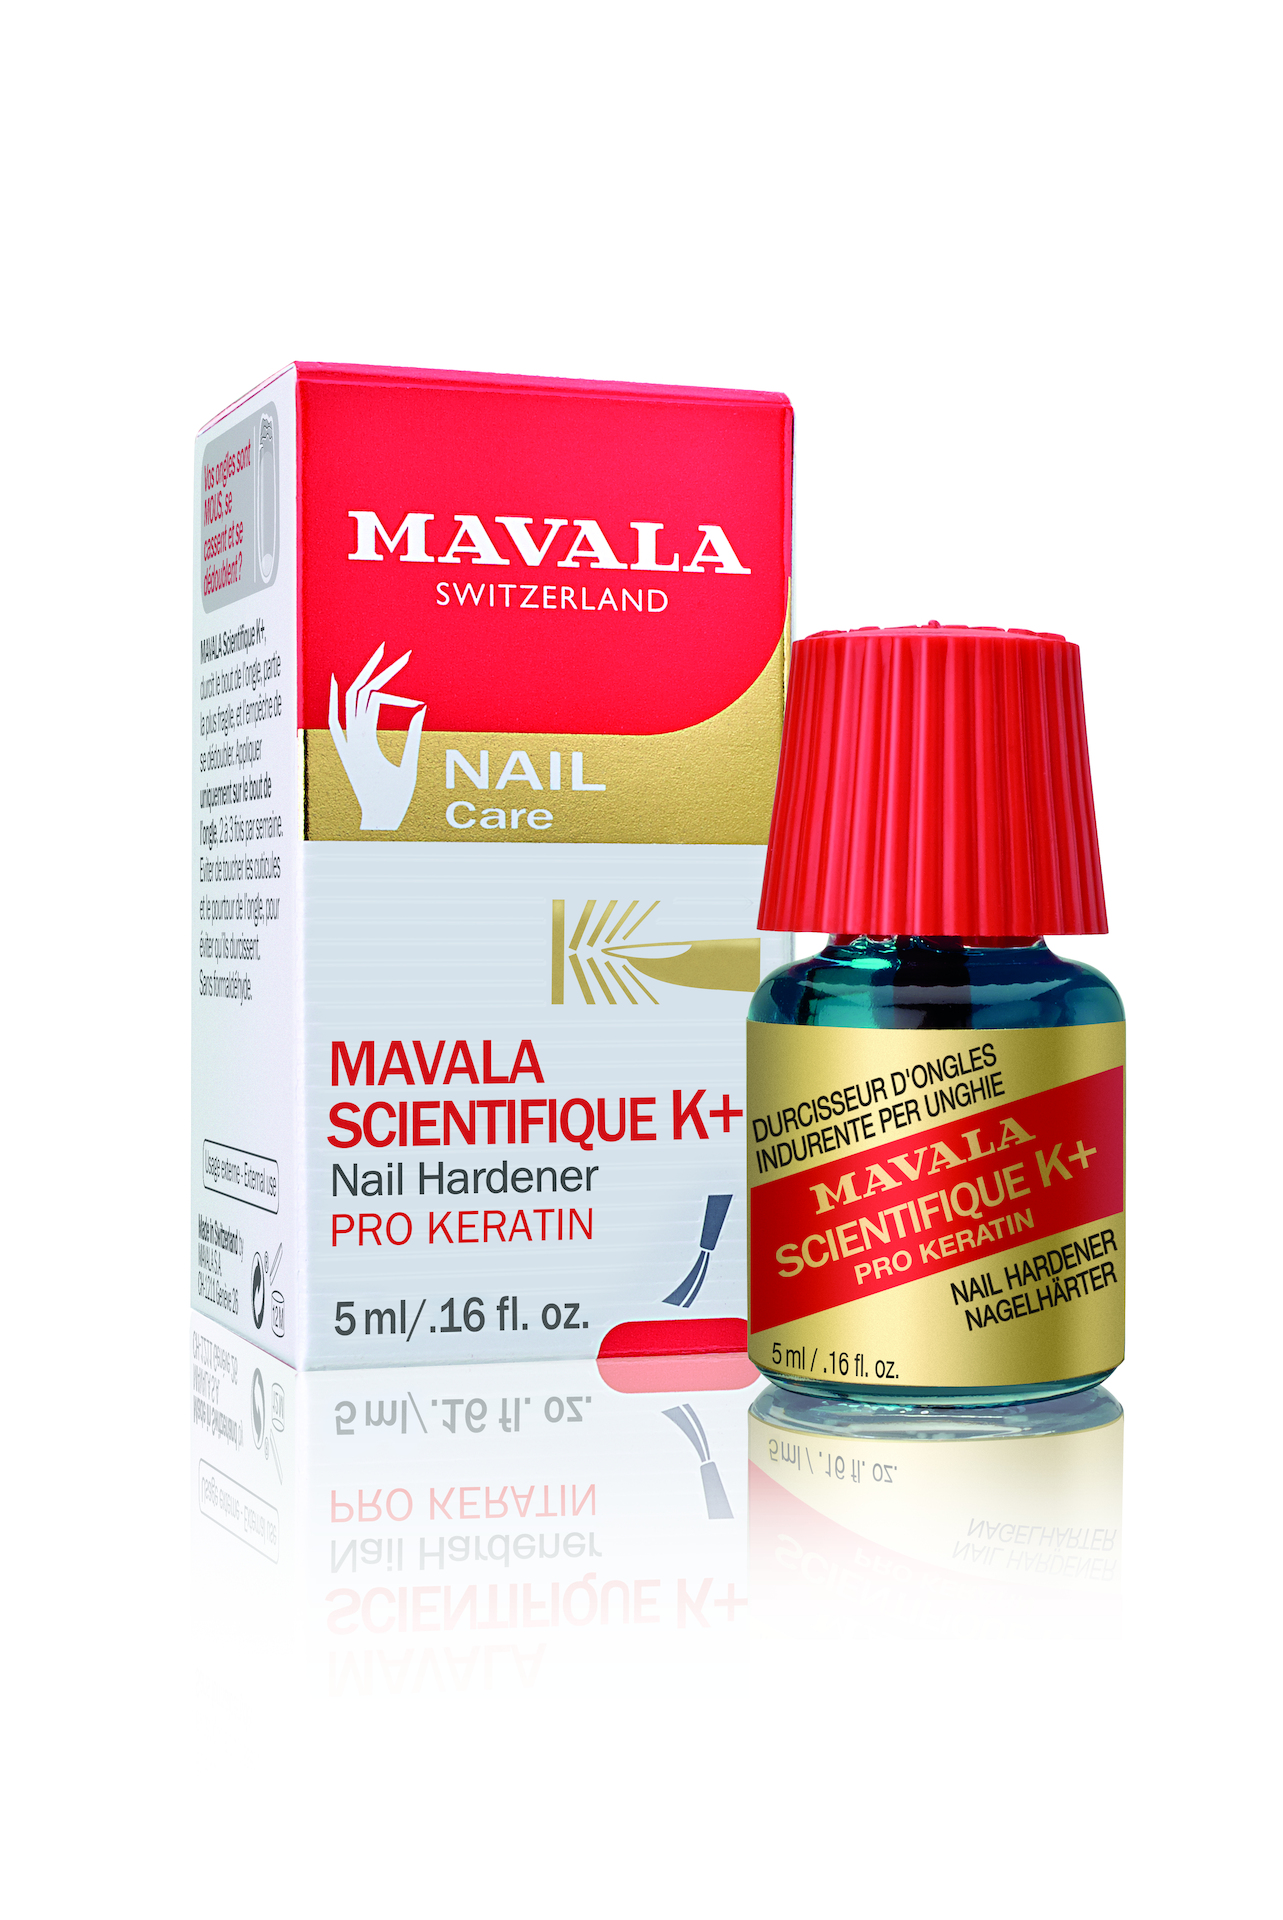 Scientifique K+ Nail Care